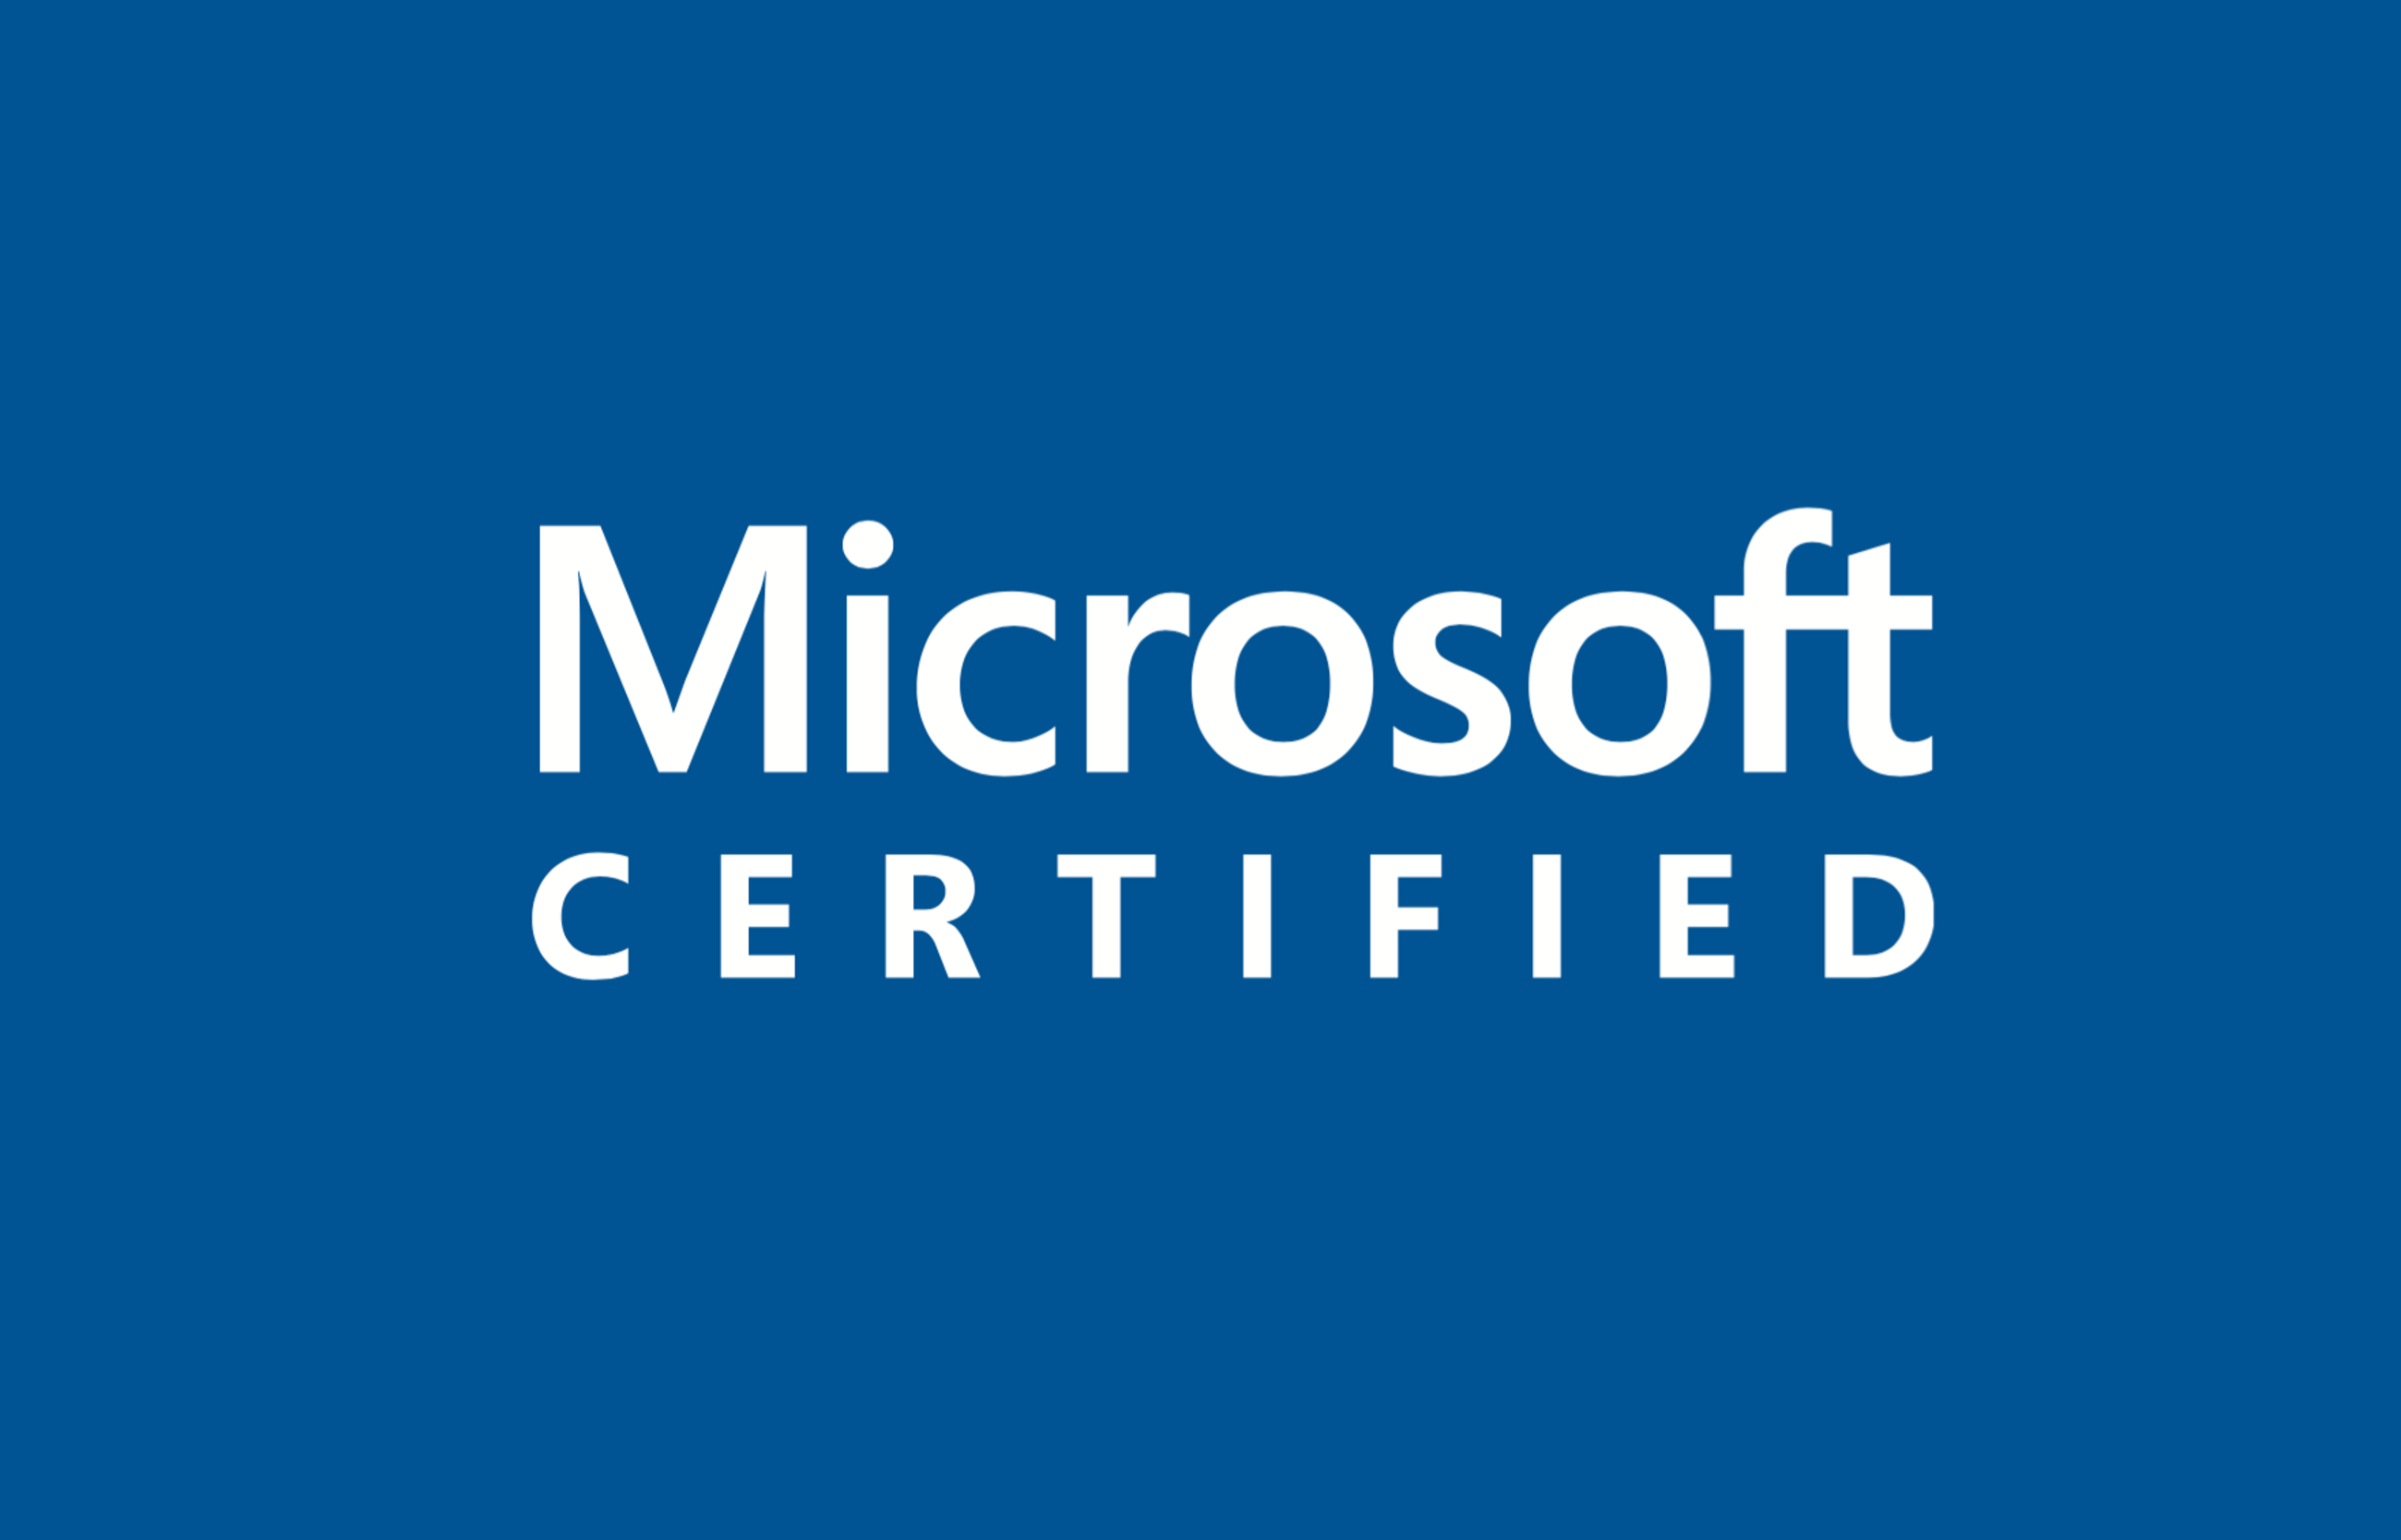 How To Become An Mcsd Microsoft Certified Solutions Developer Part 1